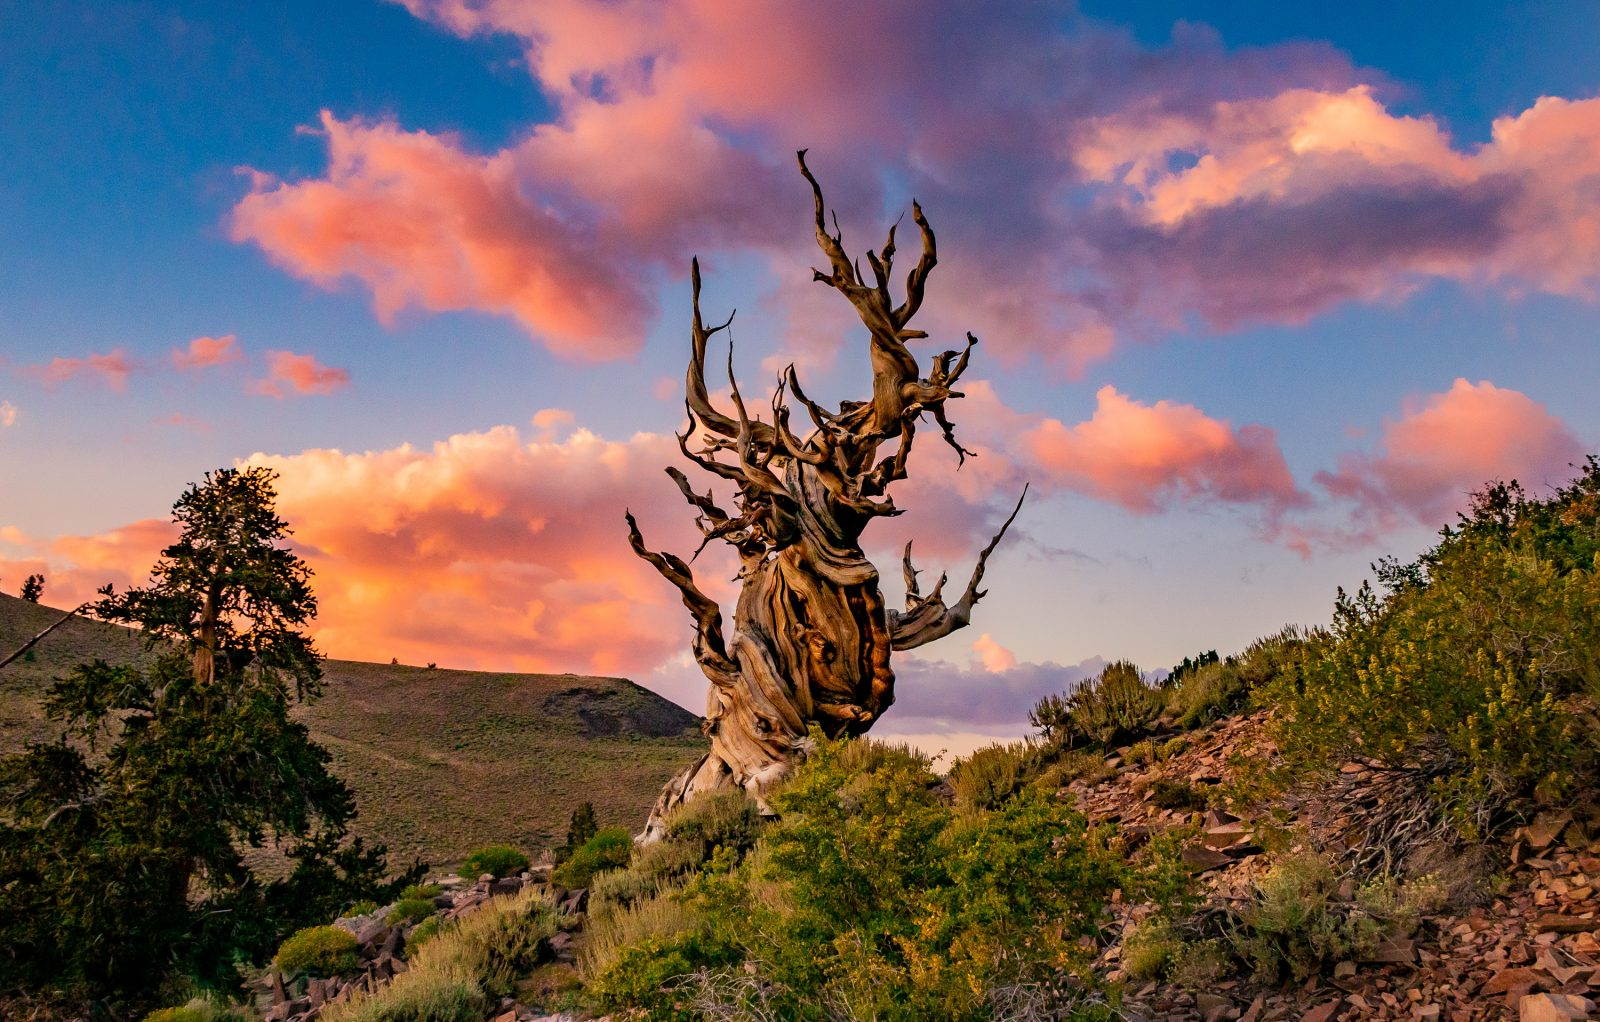 Picturesque Sunset Over The Ancient Bristlecone Pine Forest